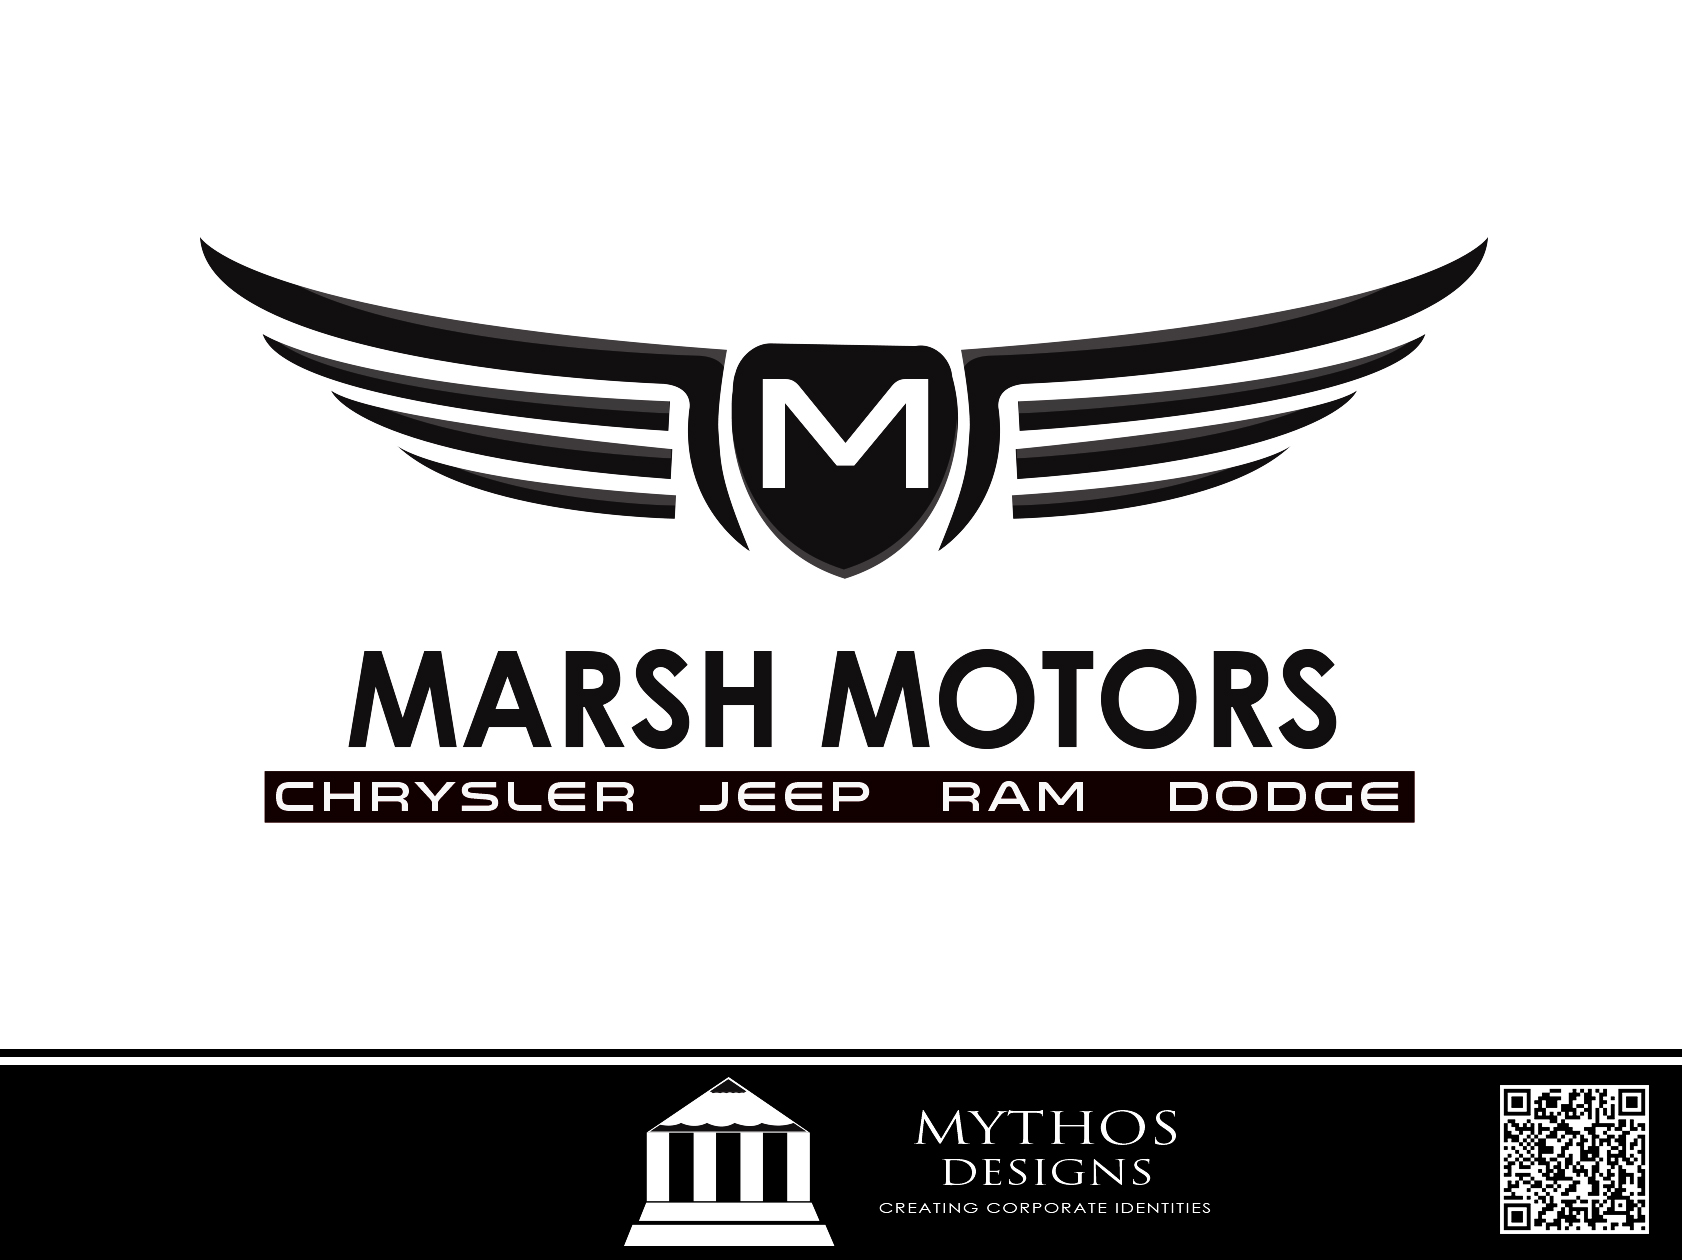 Logo Design by Mythos Designs - Entry No. 54 in the Logo Design Contest Marsh Motors Chrysler Logo Design.